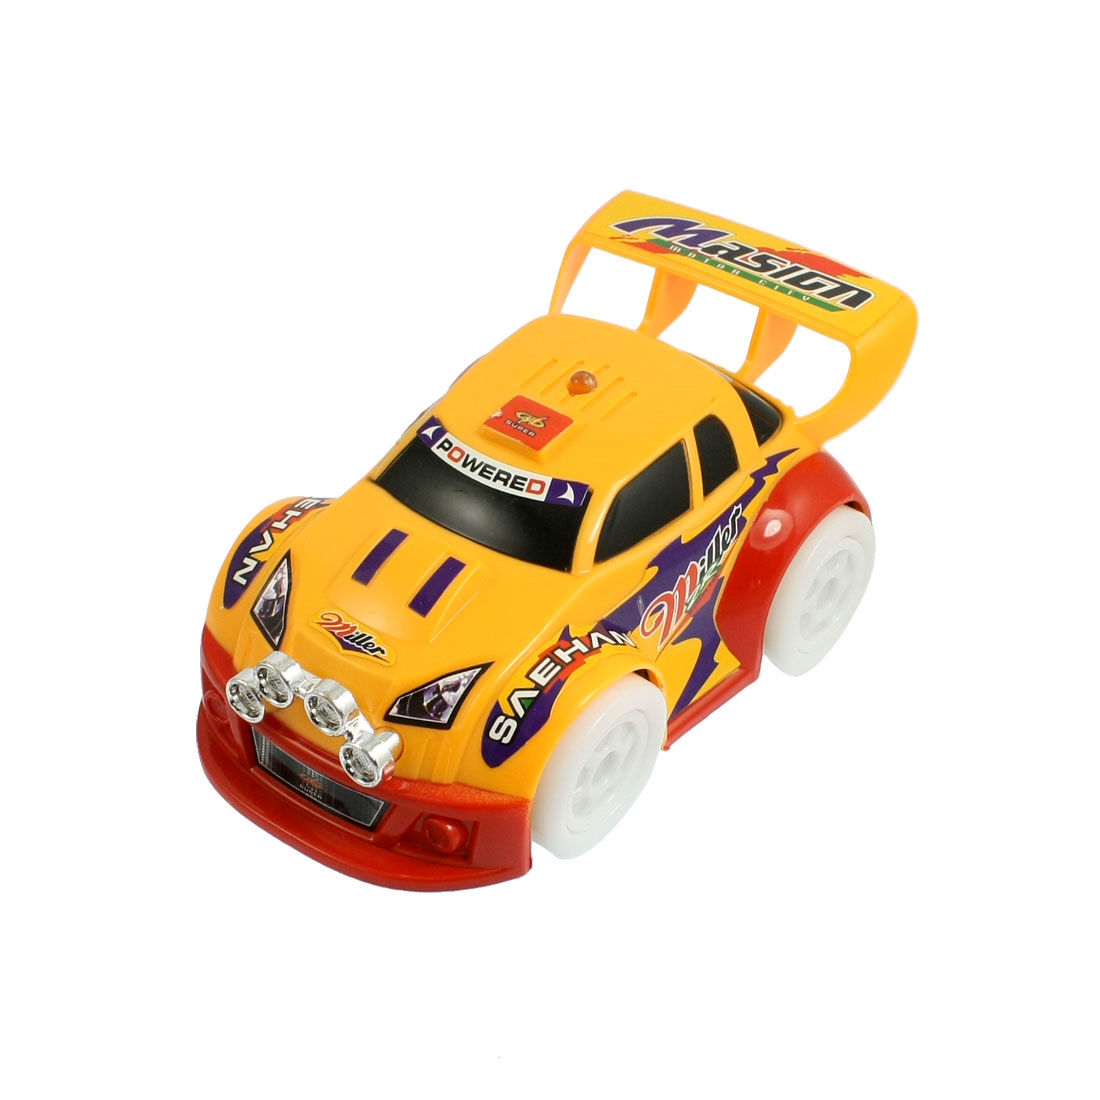 Flash Light Power Sport Racing Toy Car Red Yellow for Child